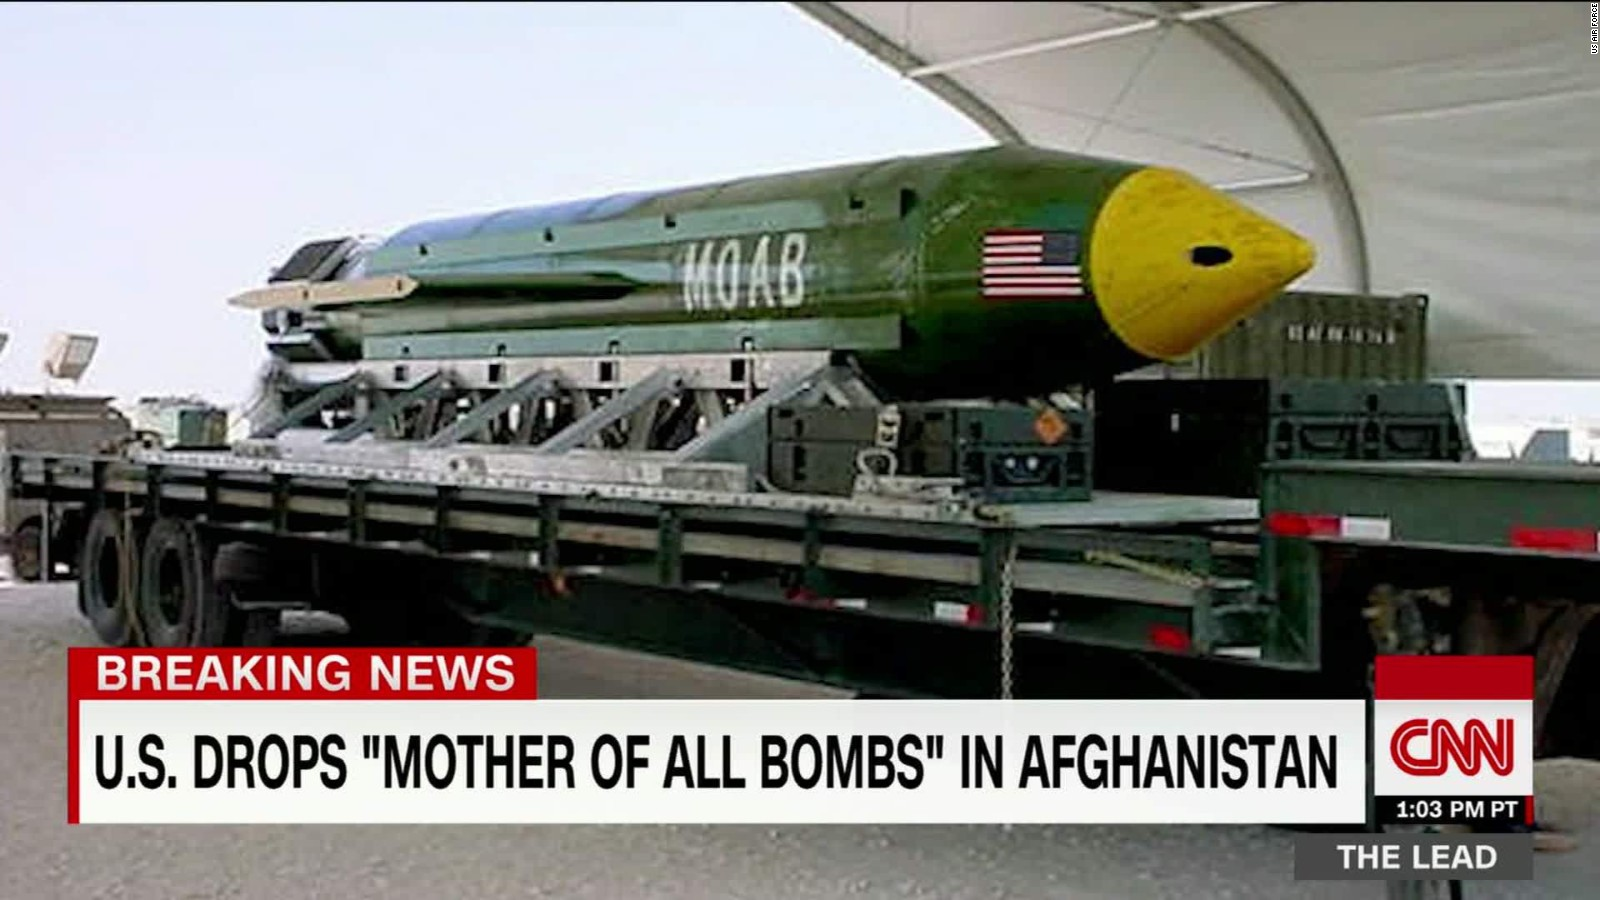 Watch: Moment 'mother of all bombs' explodes - CNN Video